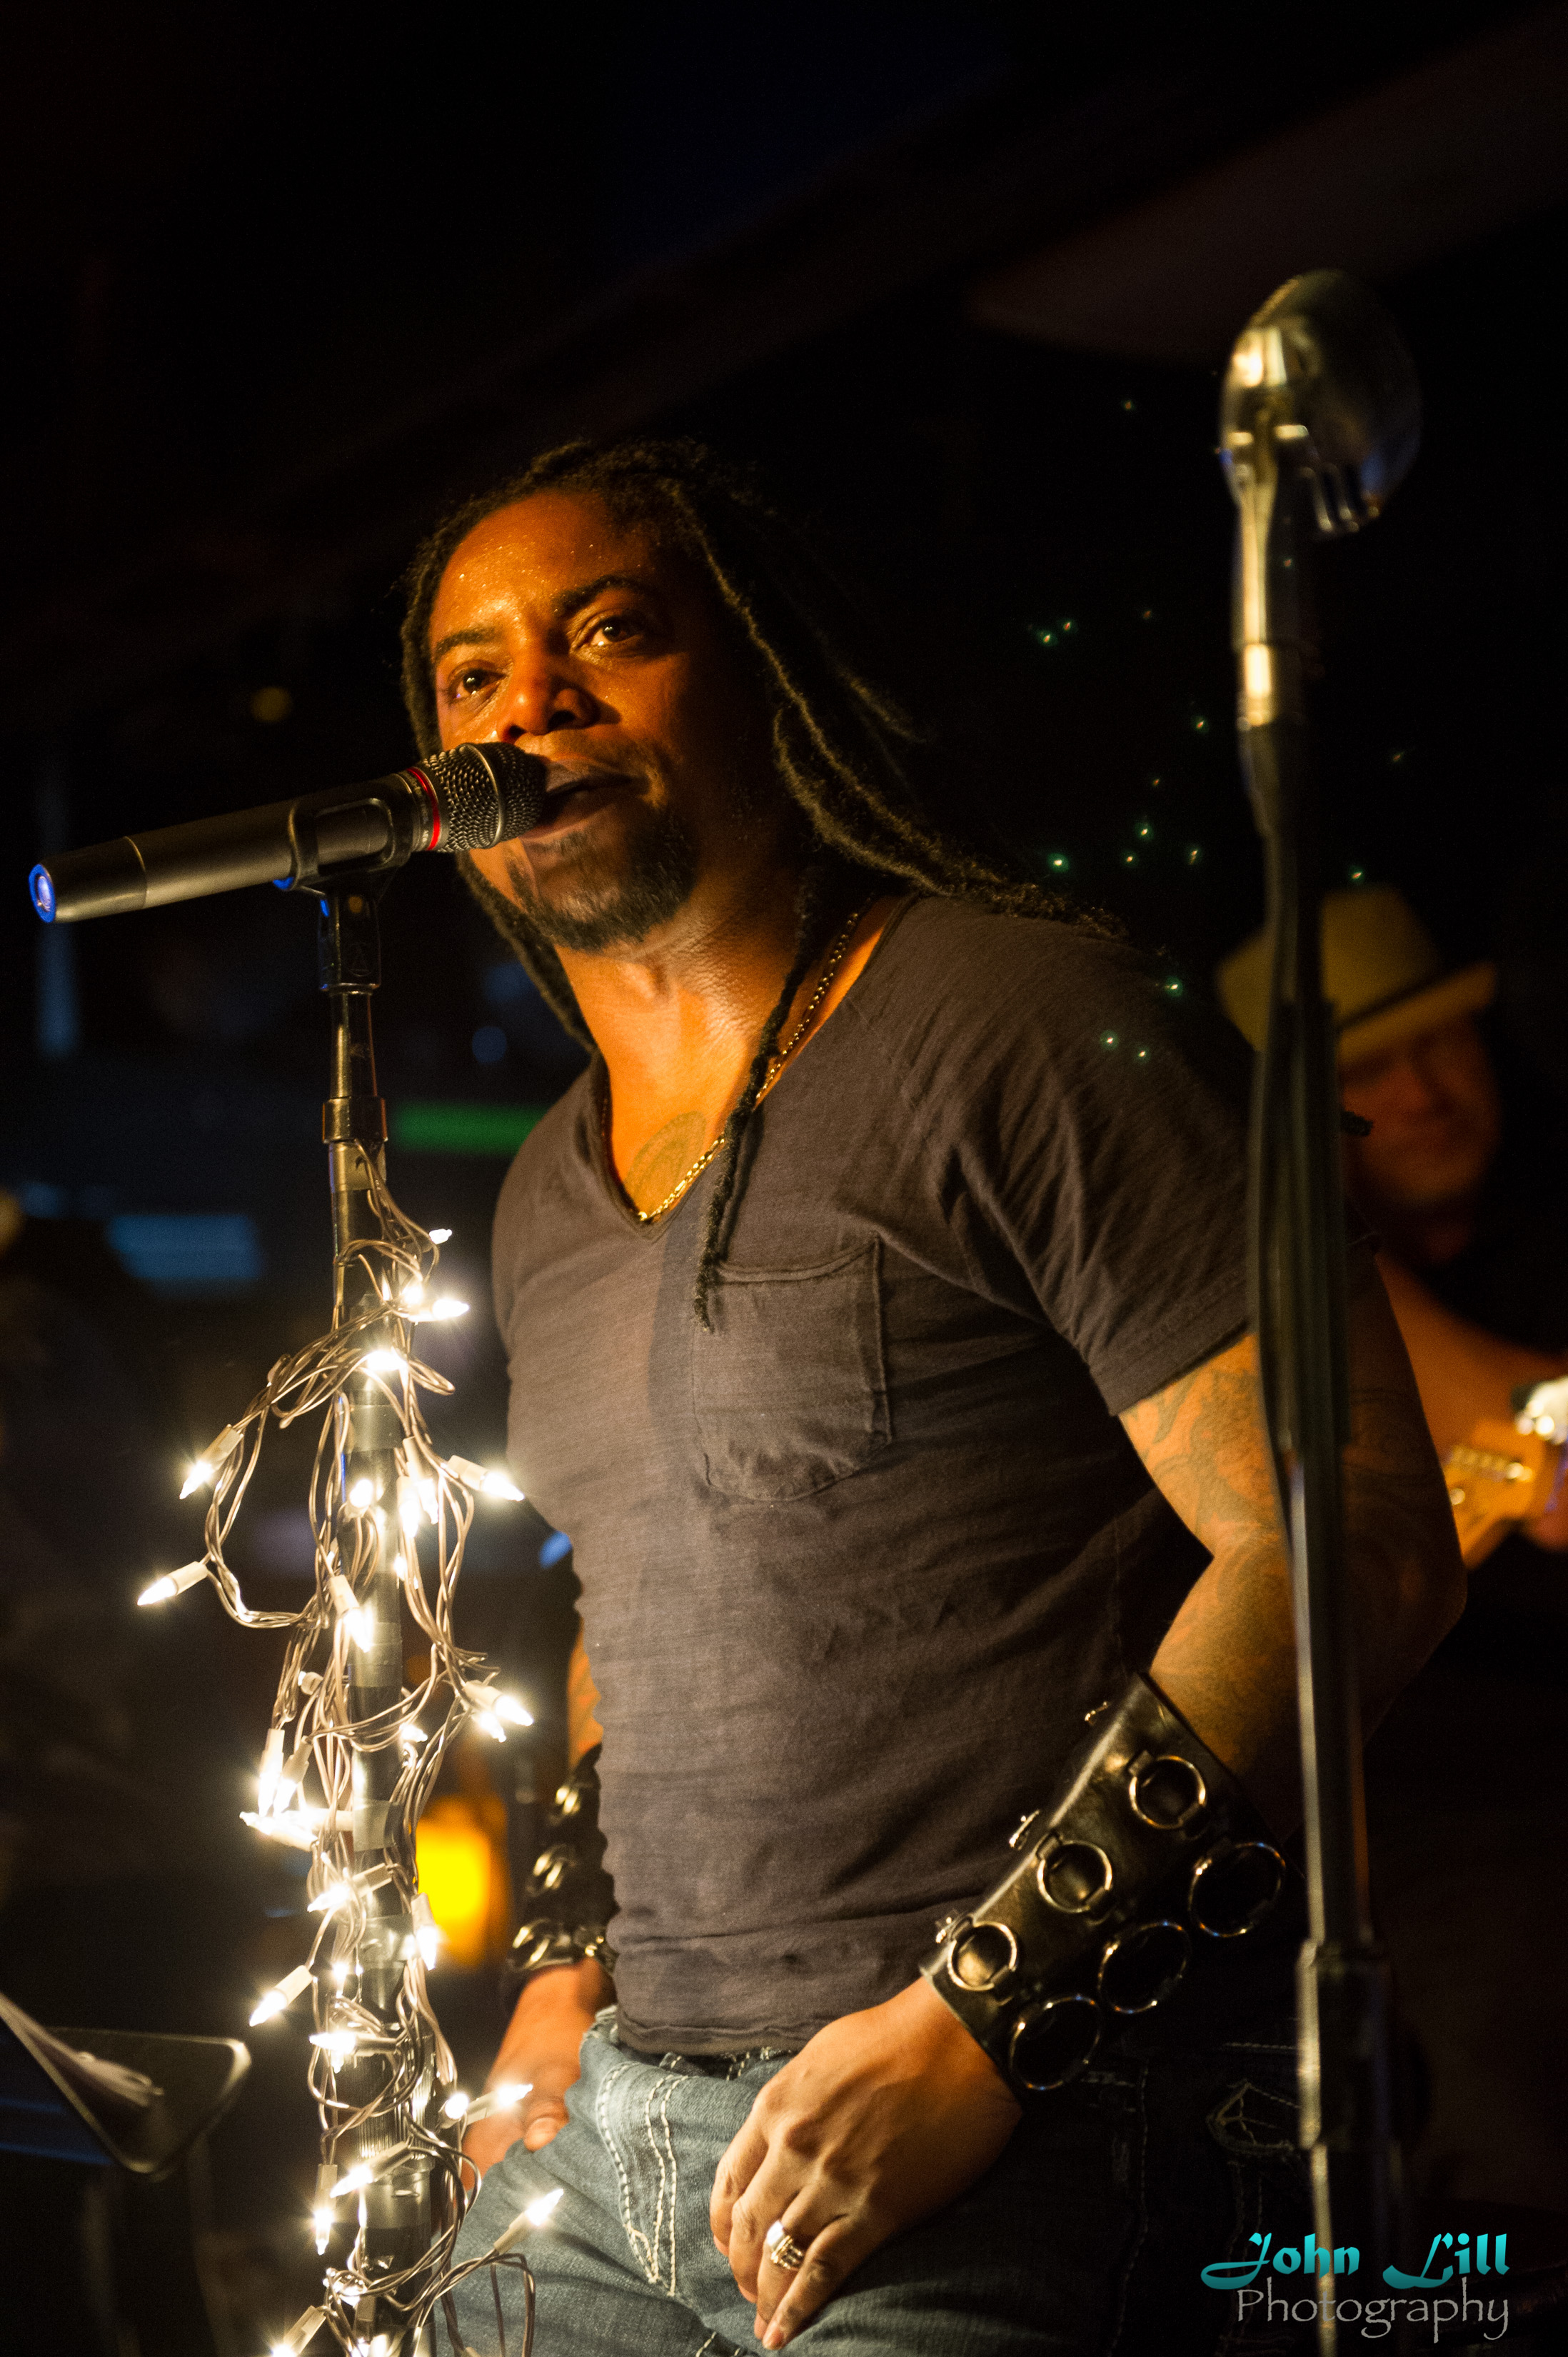 Sevendust Live at El Corazon (Photo by John Lill)